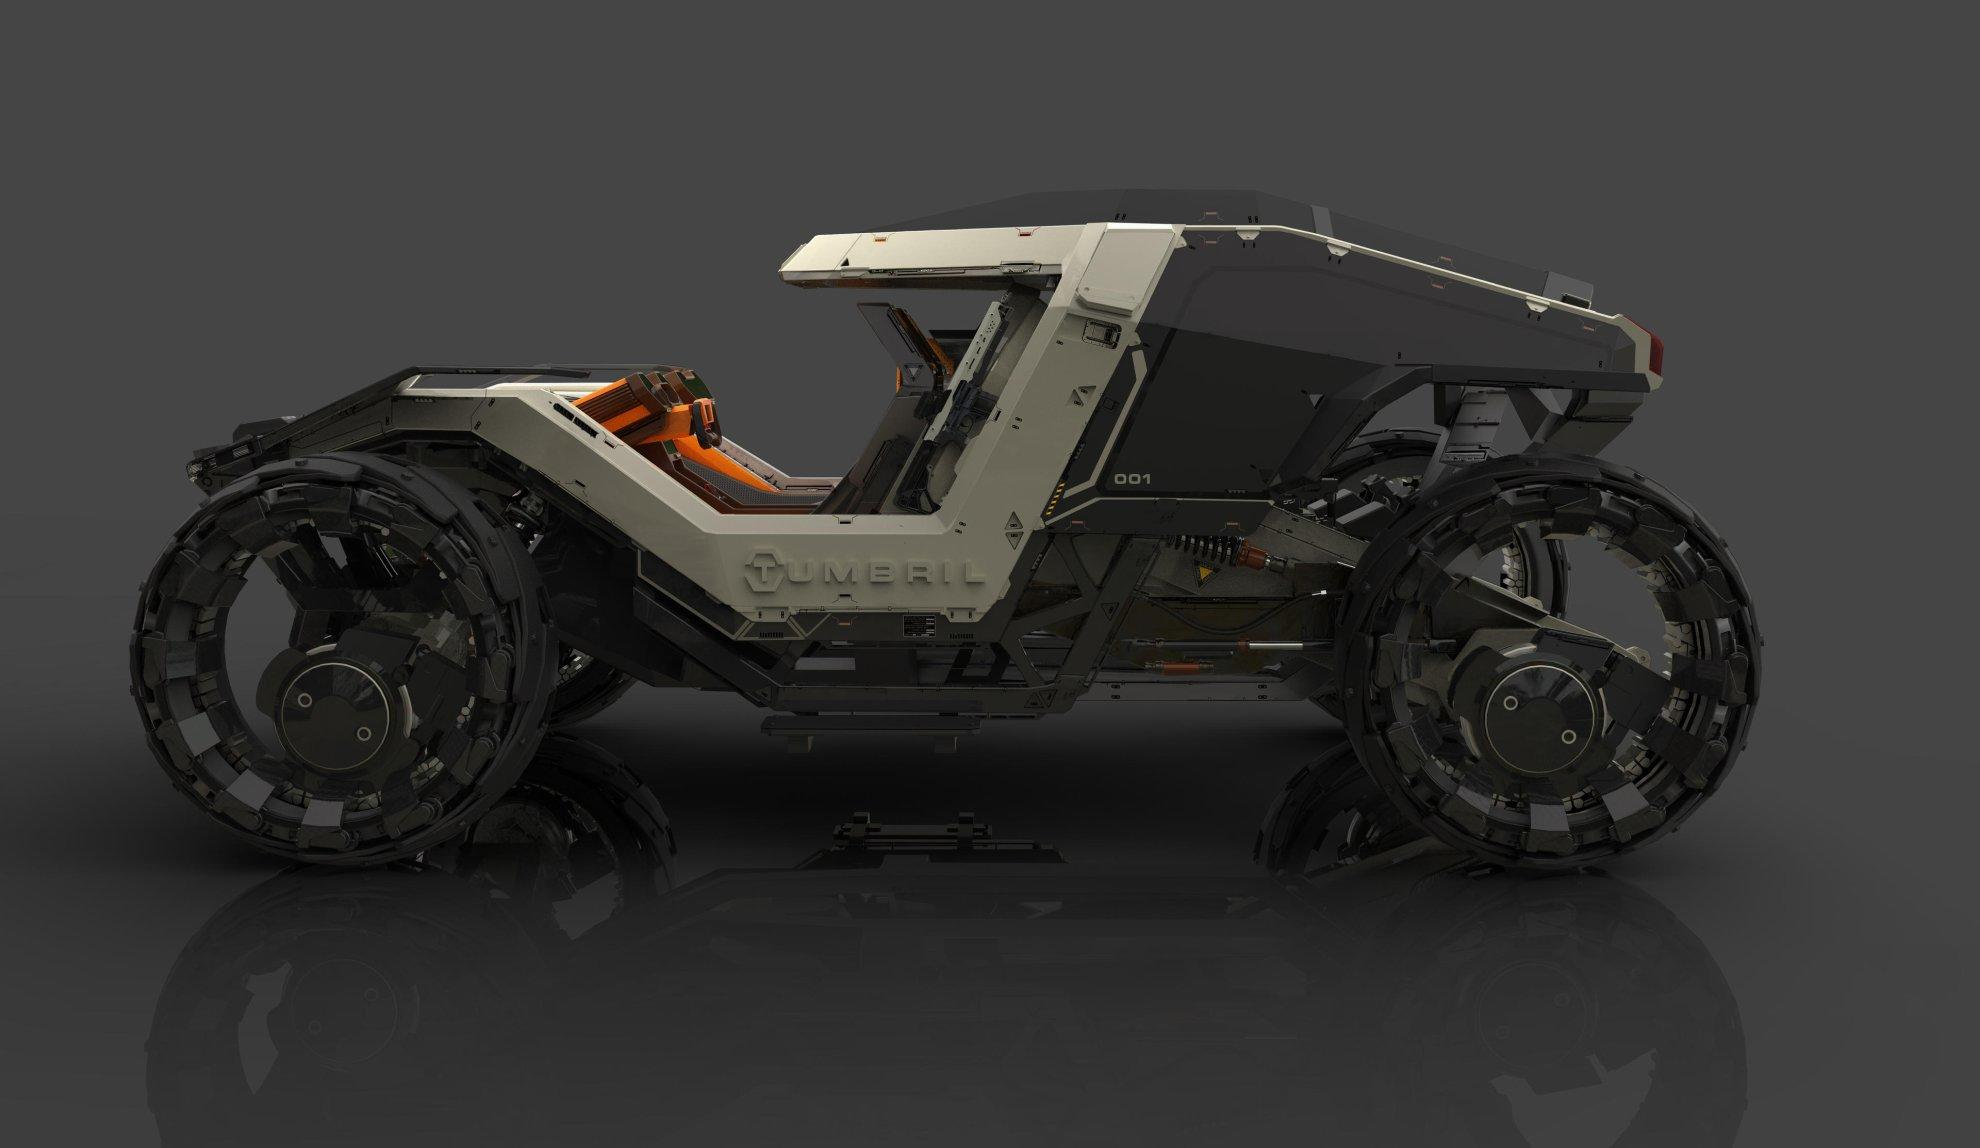 Tumbril Cyclone z boku